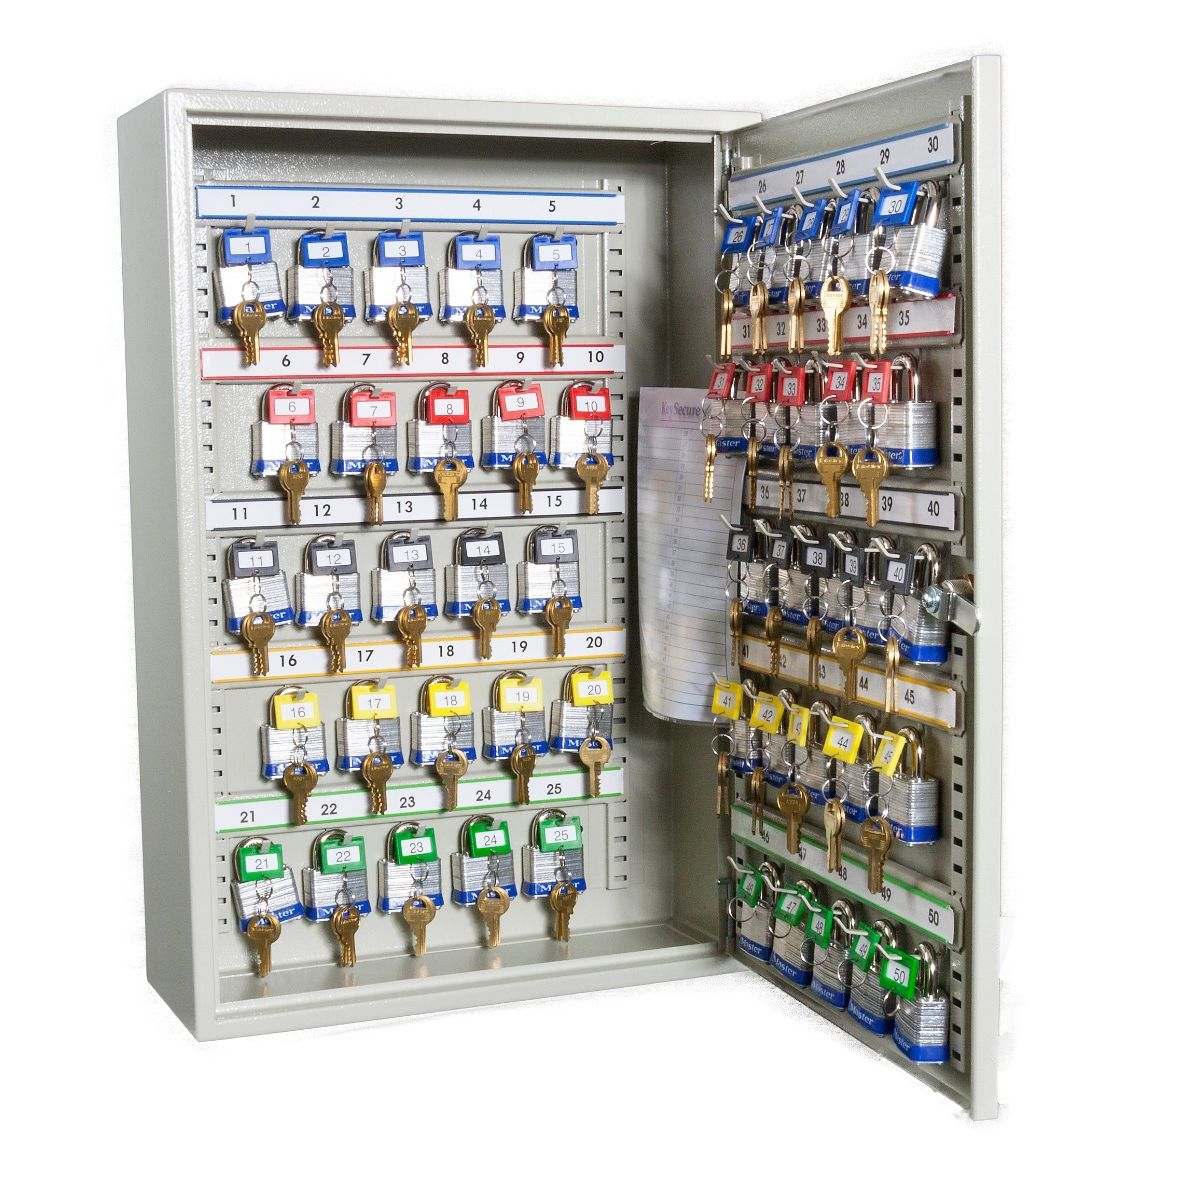 high_capacity_key_cabinets_with_electronic_cam_lock_50_hook_open.jpg